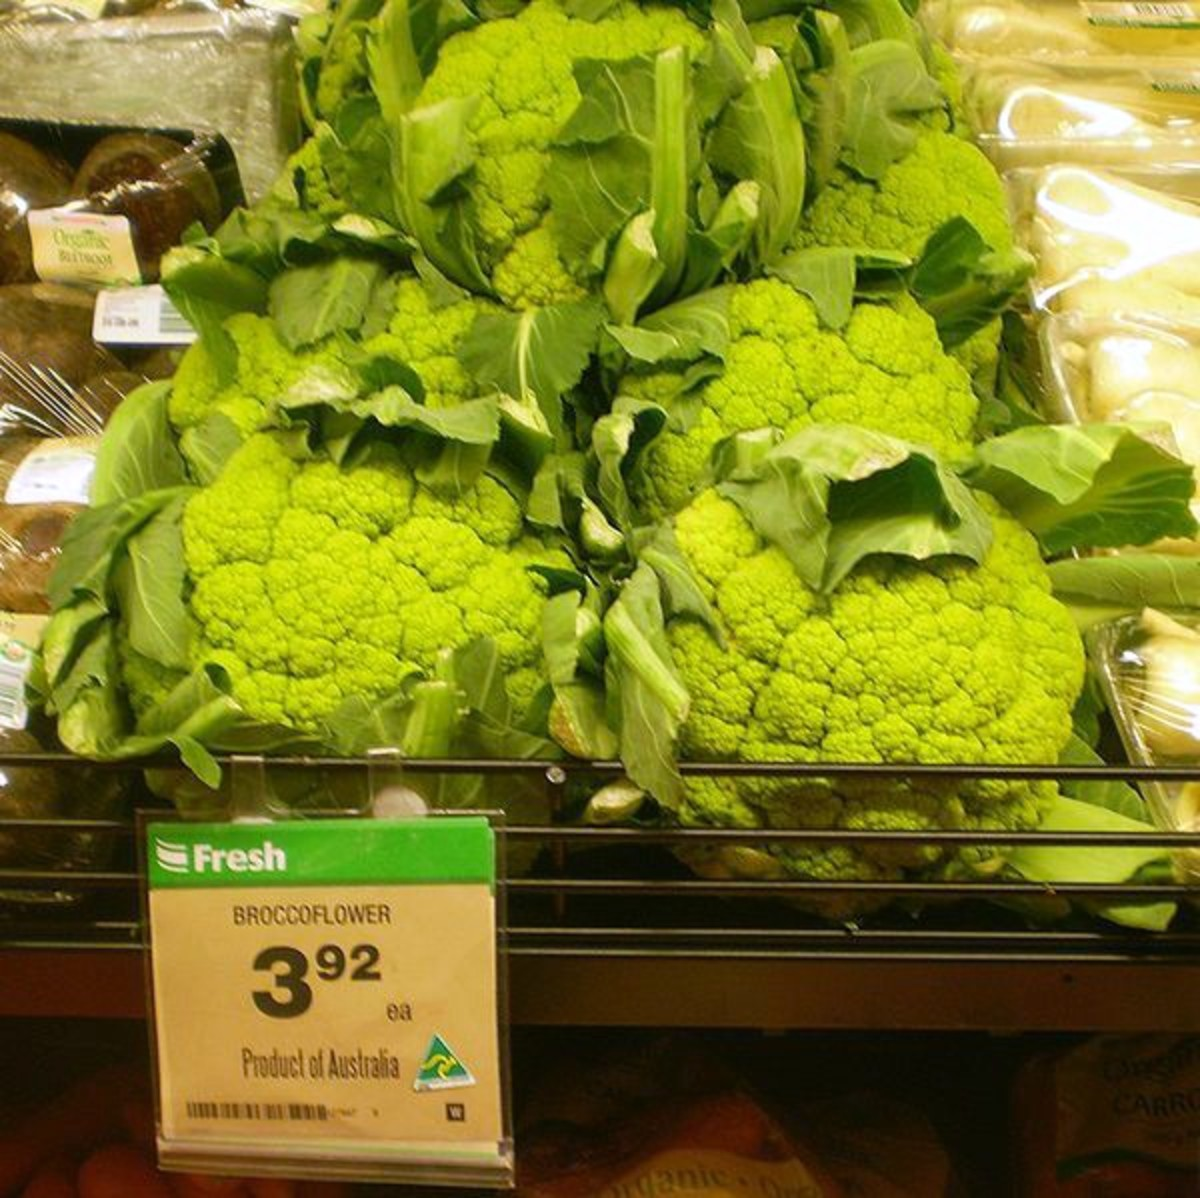 Broccoflower (green cauliflower)